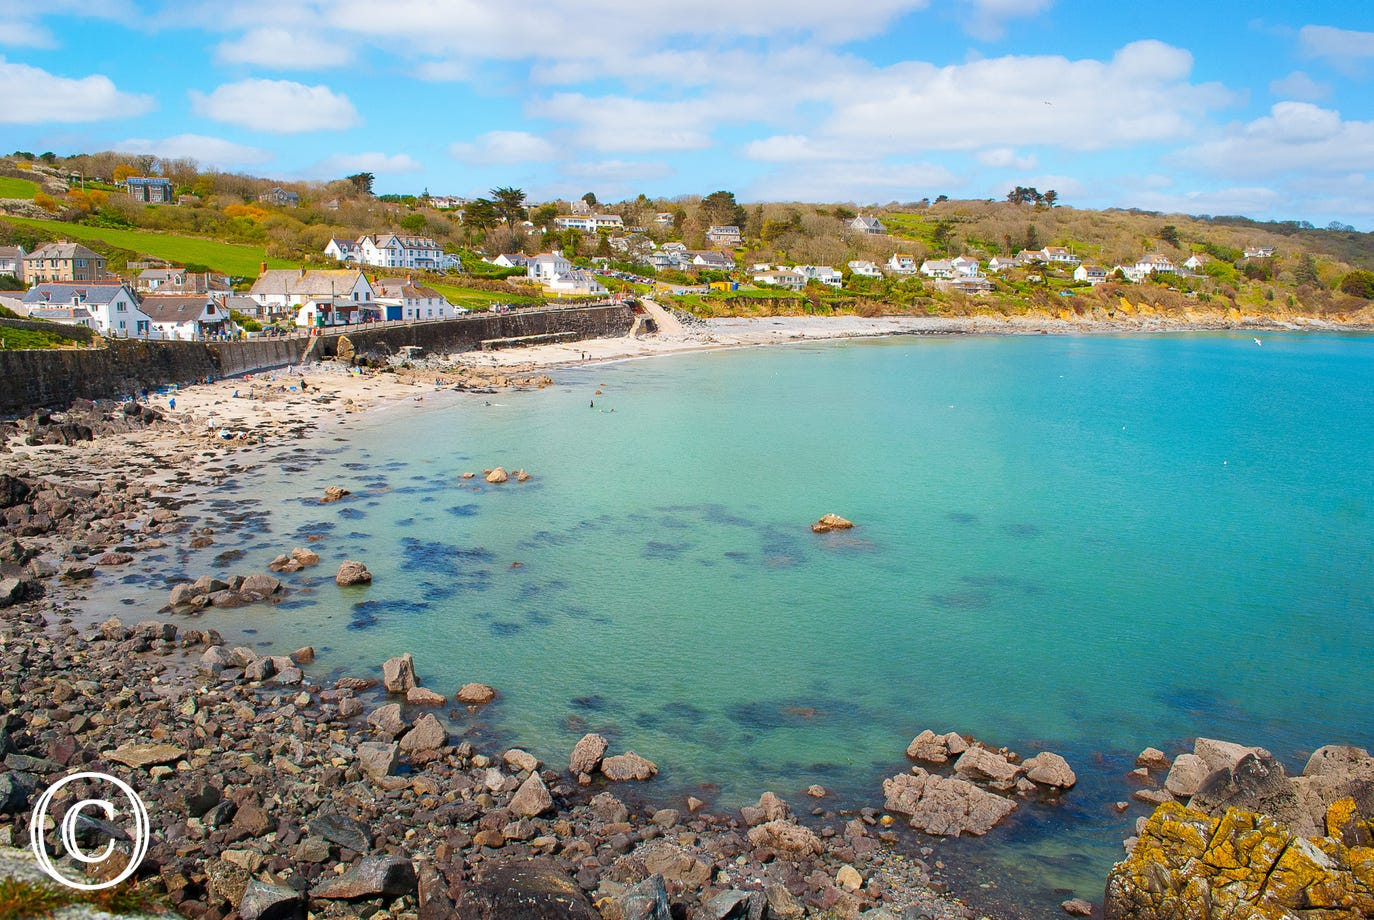 Coverack - Just a 20 minute drive from Mudgeon Cottage